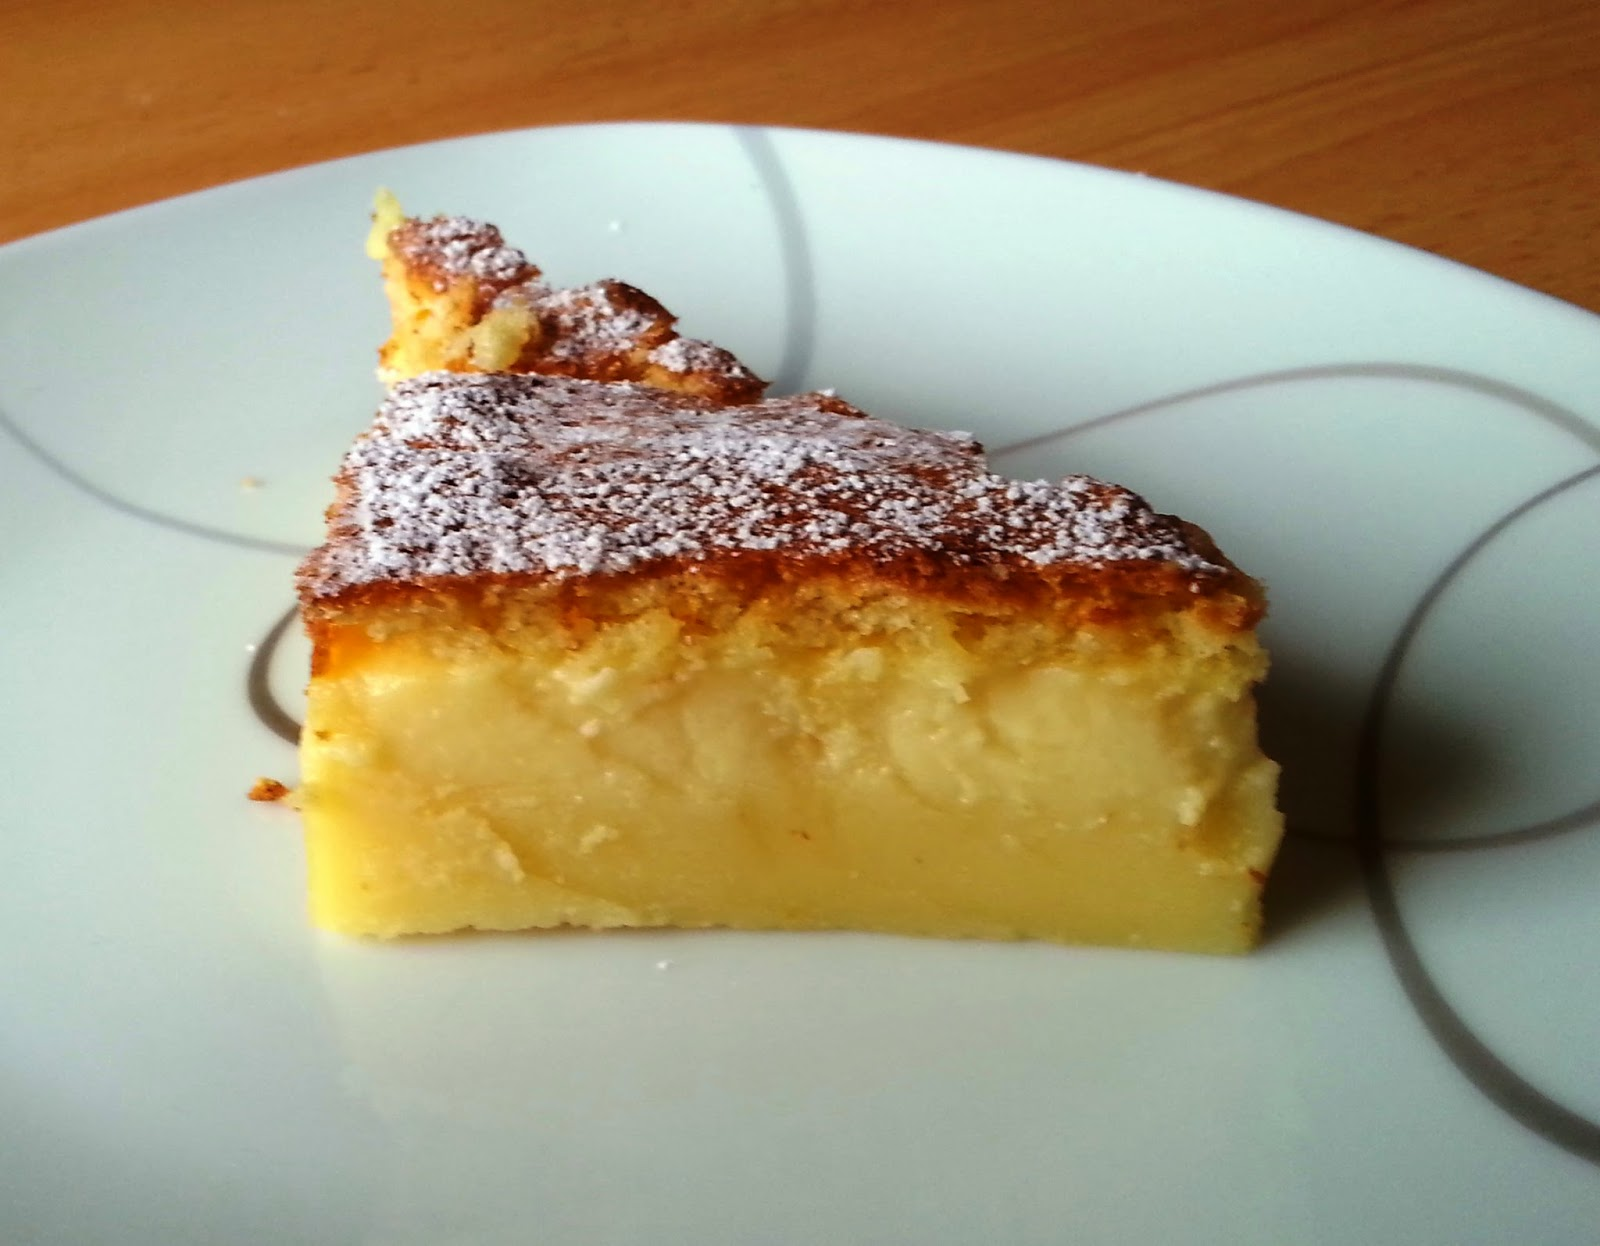 Sanna S Hexenkuche Magic Cake Puddingkuchen